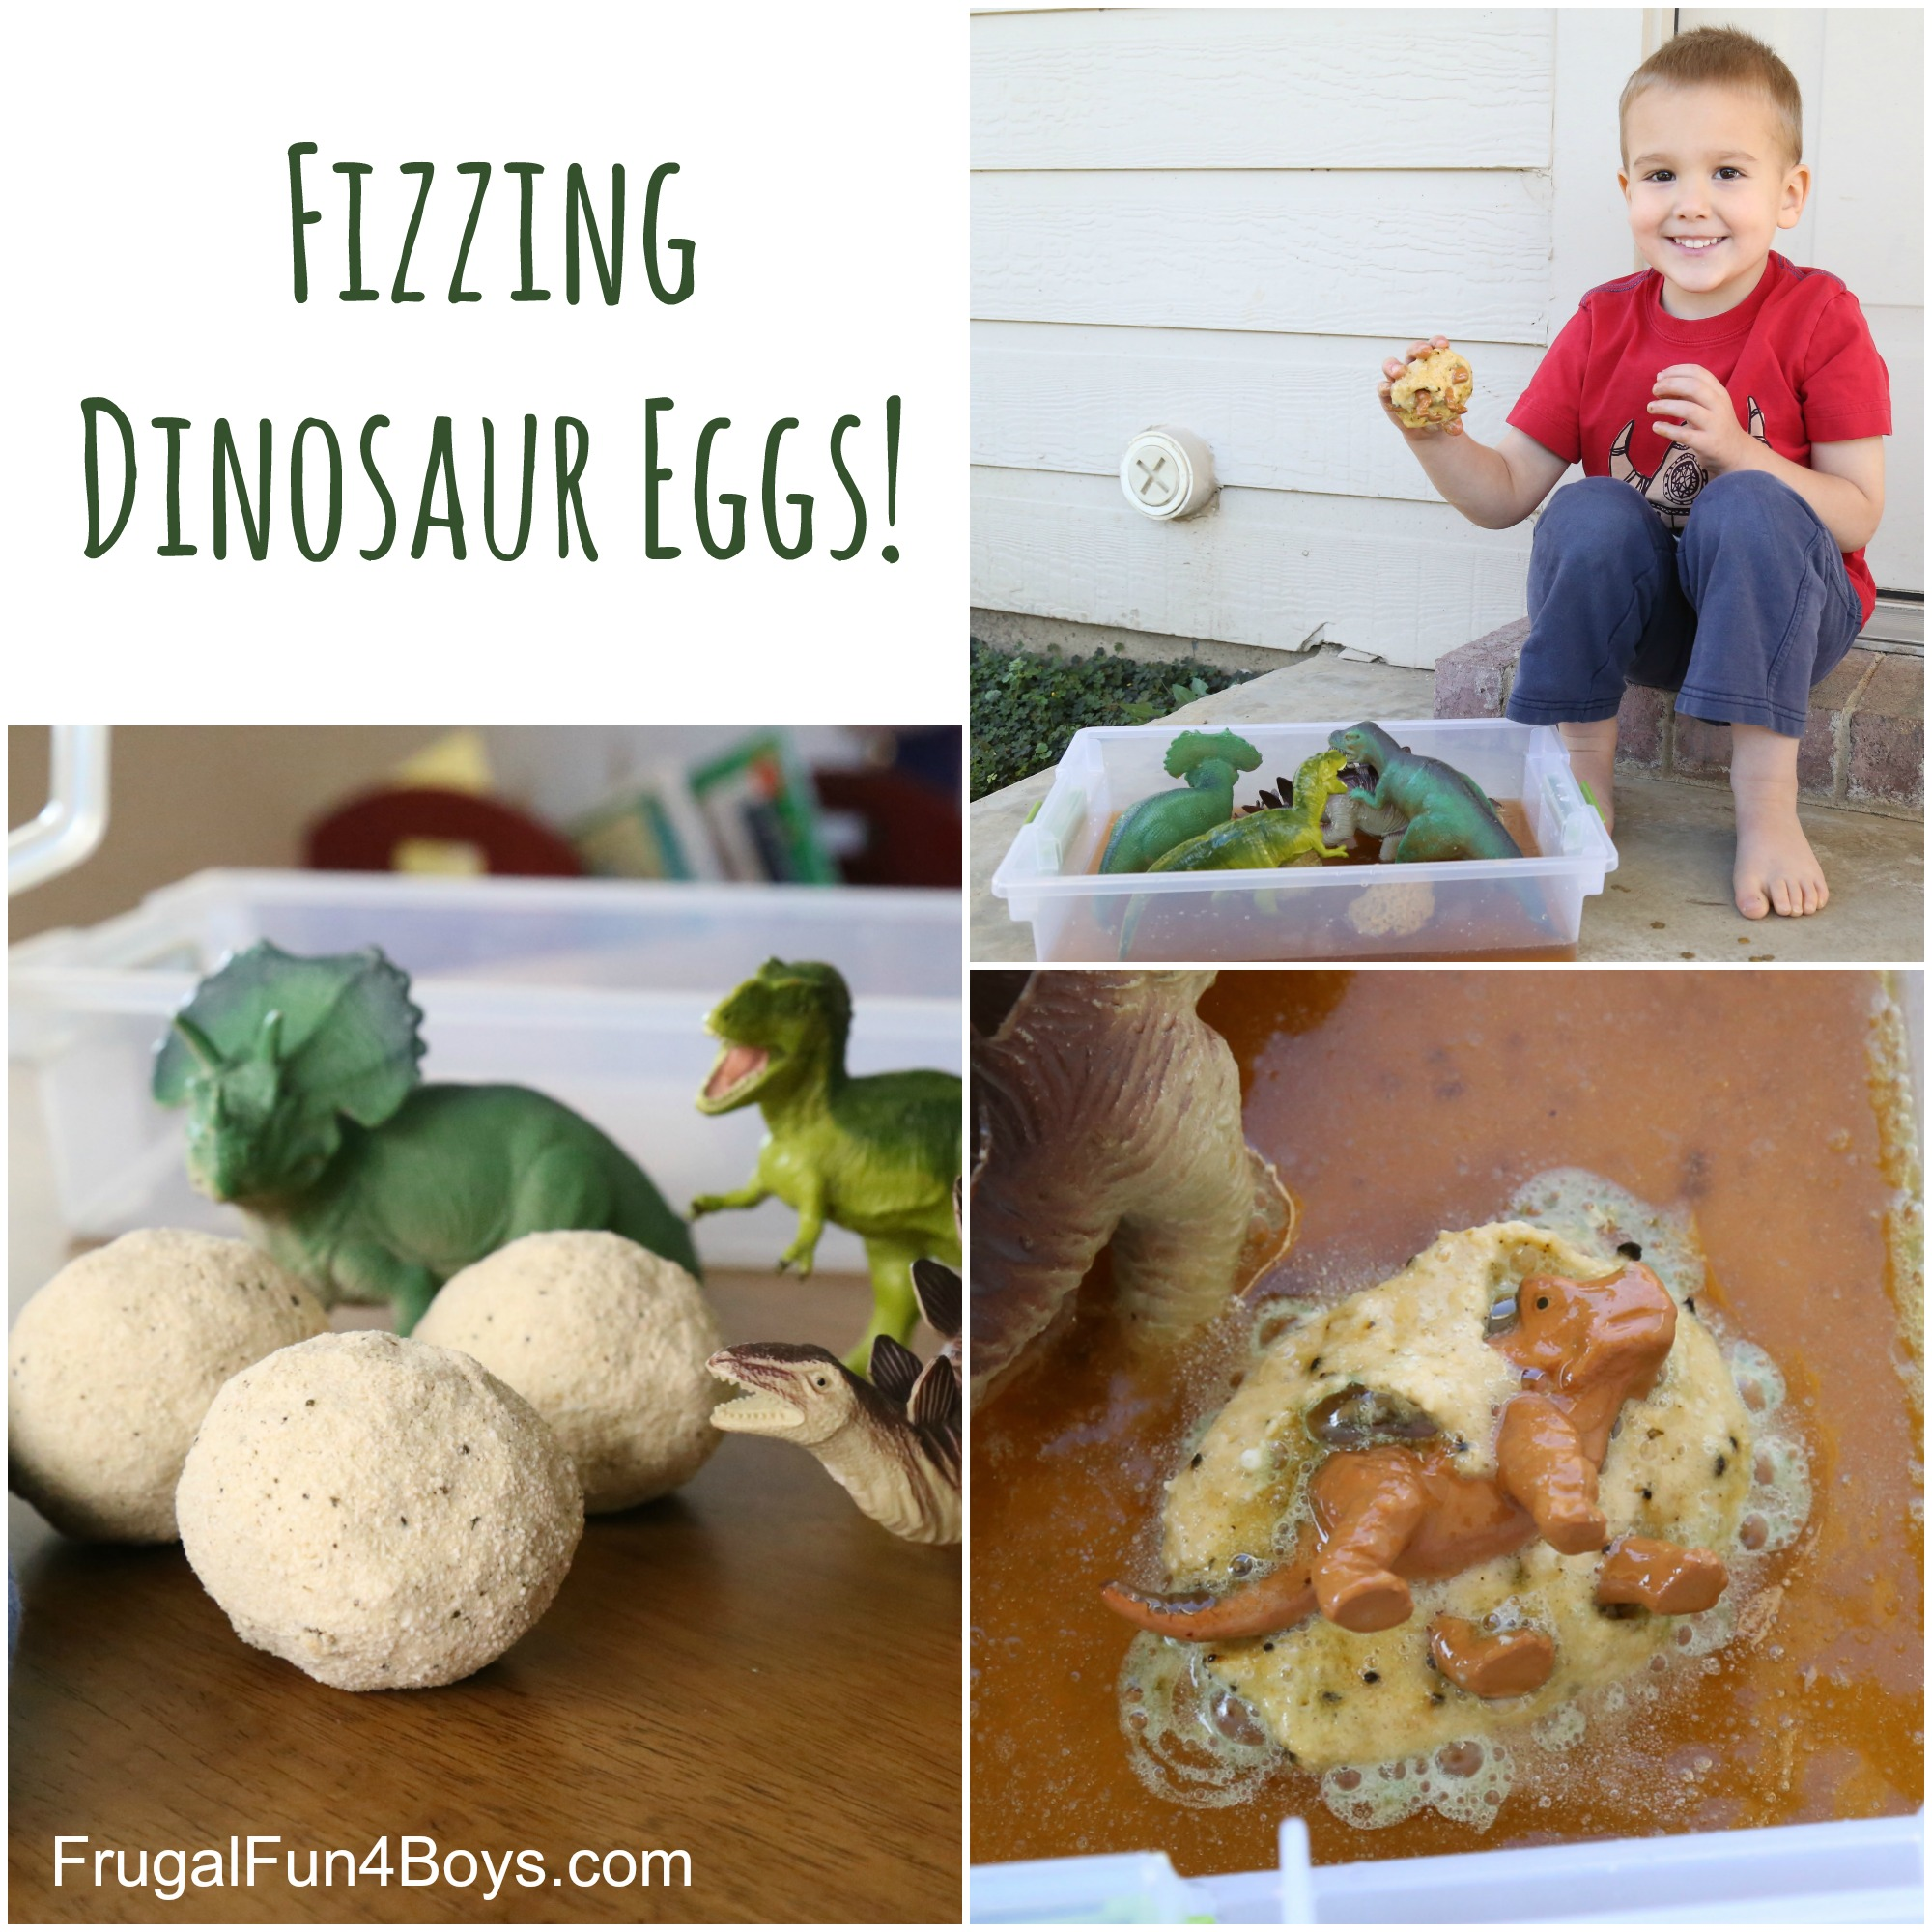 Fizzing Hatching Dinosaur Eggs - Sensory Play with Bath Bombs!